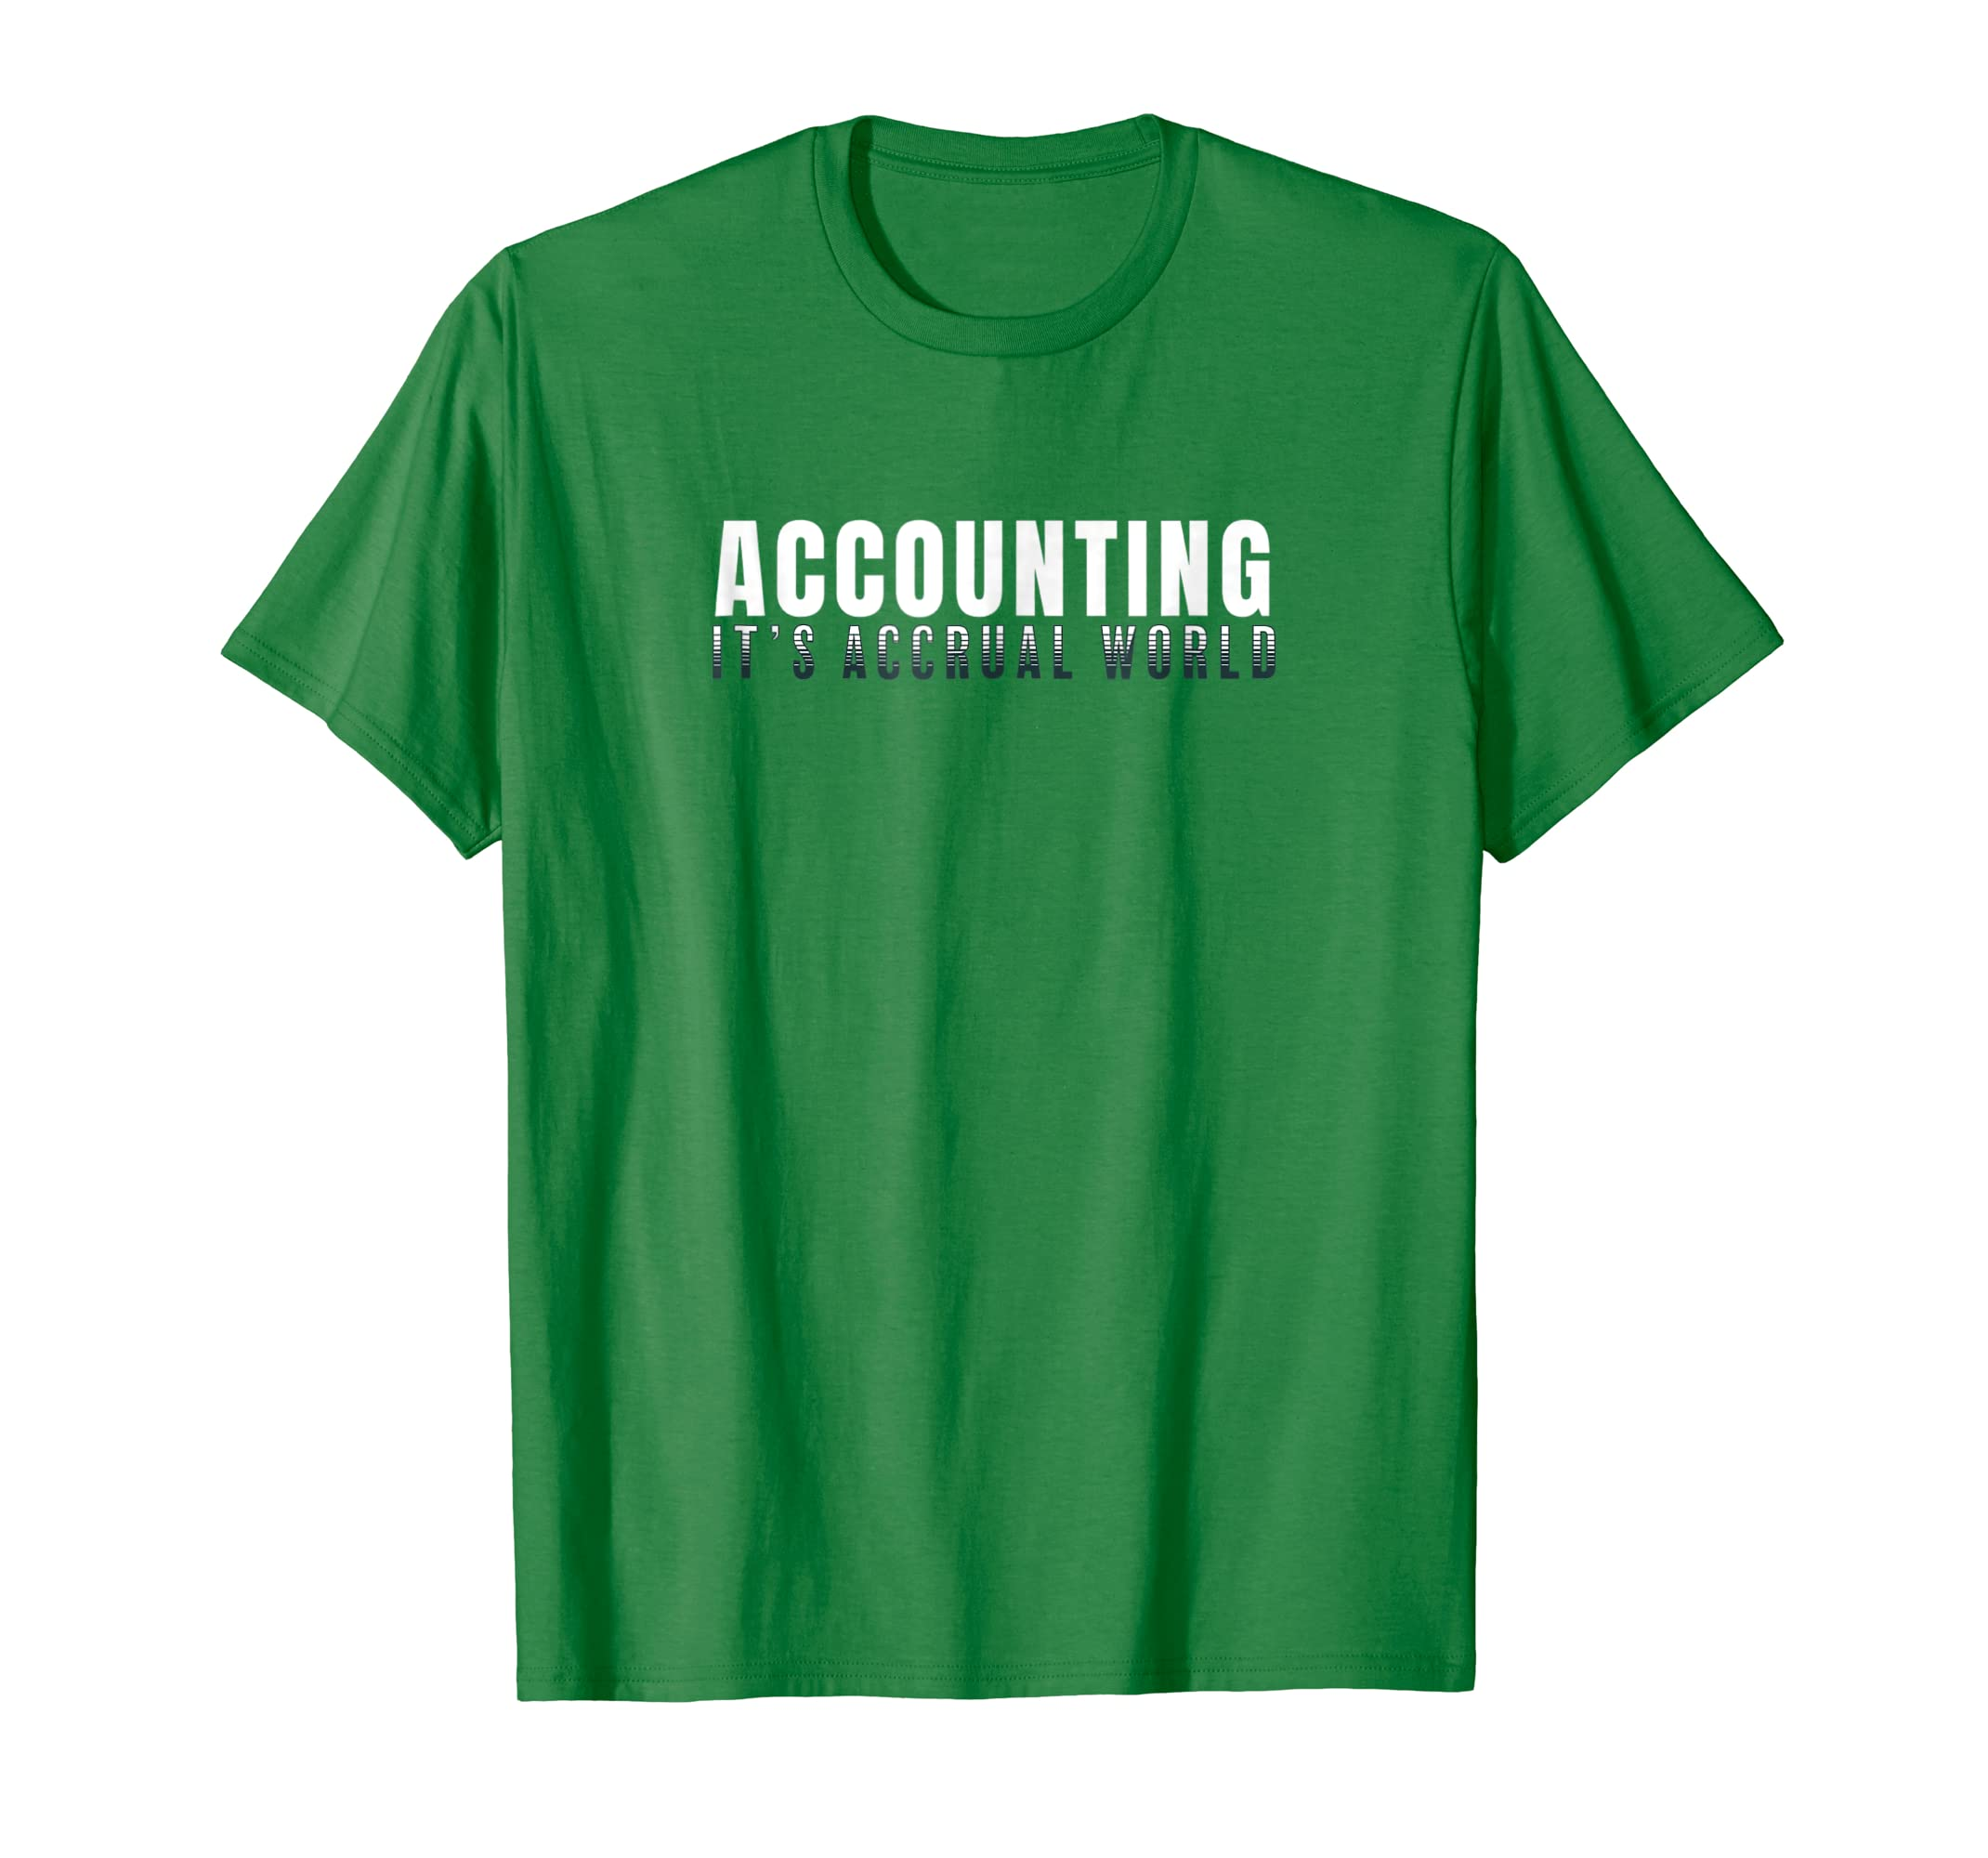 Cool Accounting Accrual World Pun Balancing Accountant Shirt-Teesml